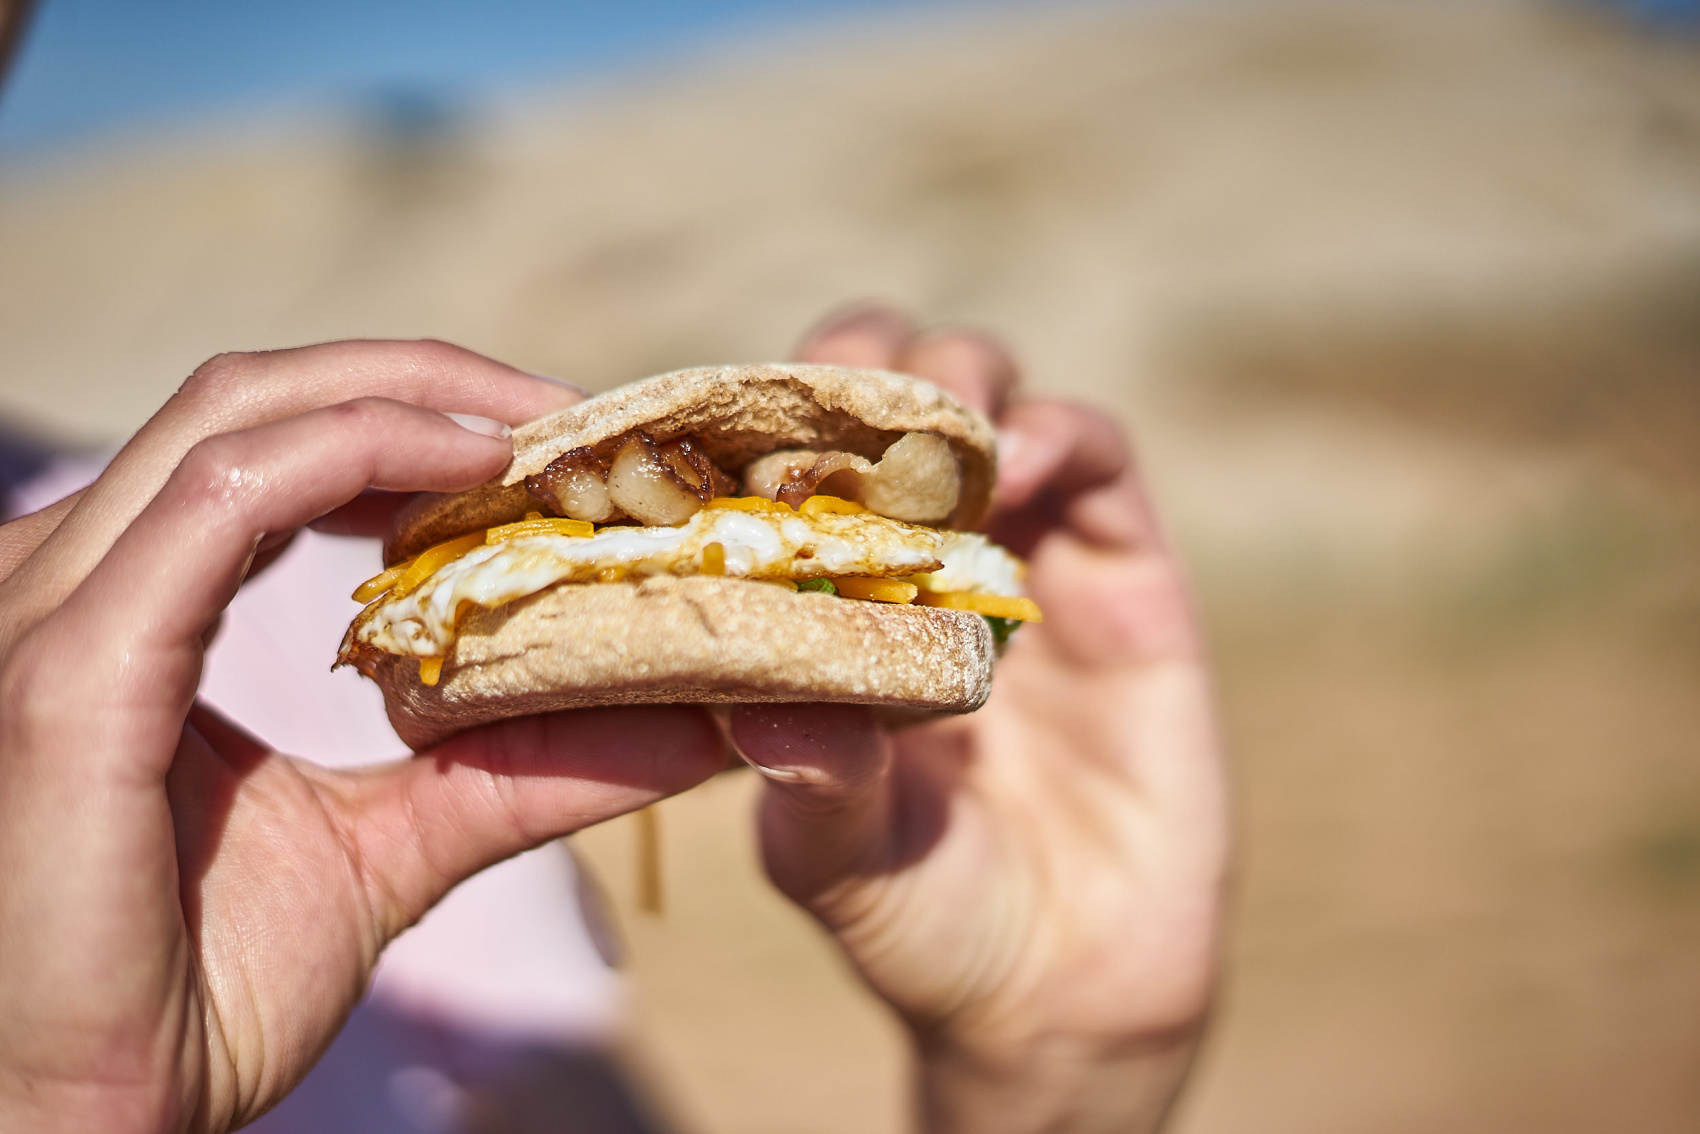 This is the ultimate car camping breakfast sandwich! Seriously, you need this on your next camping trip. Click through for the recipe and a video tutorial. www.amandaoutside.com #camping #campfood #campbreakfast